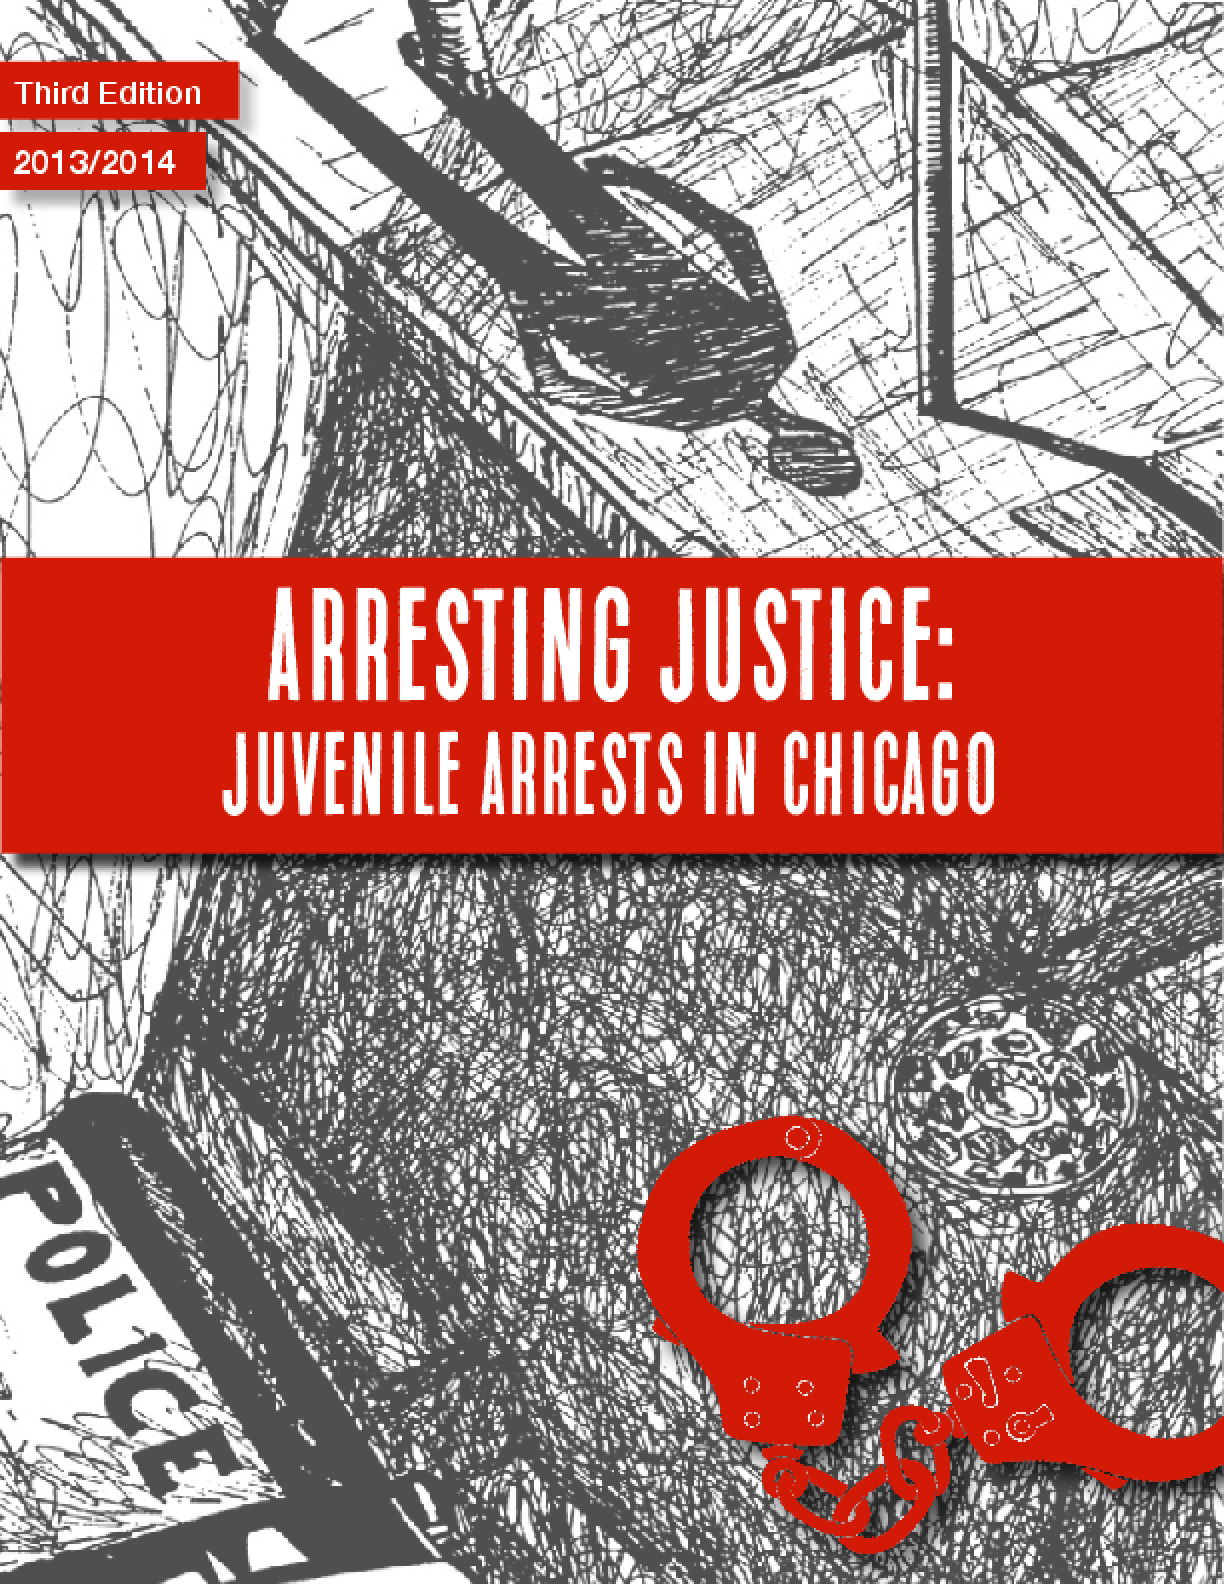 Arresting Justice Vol 3: A Visual Report of Chicago Juvenile Arrests, 2013 and 2014